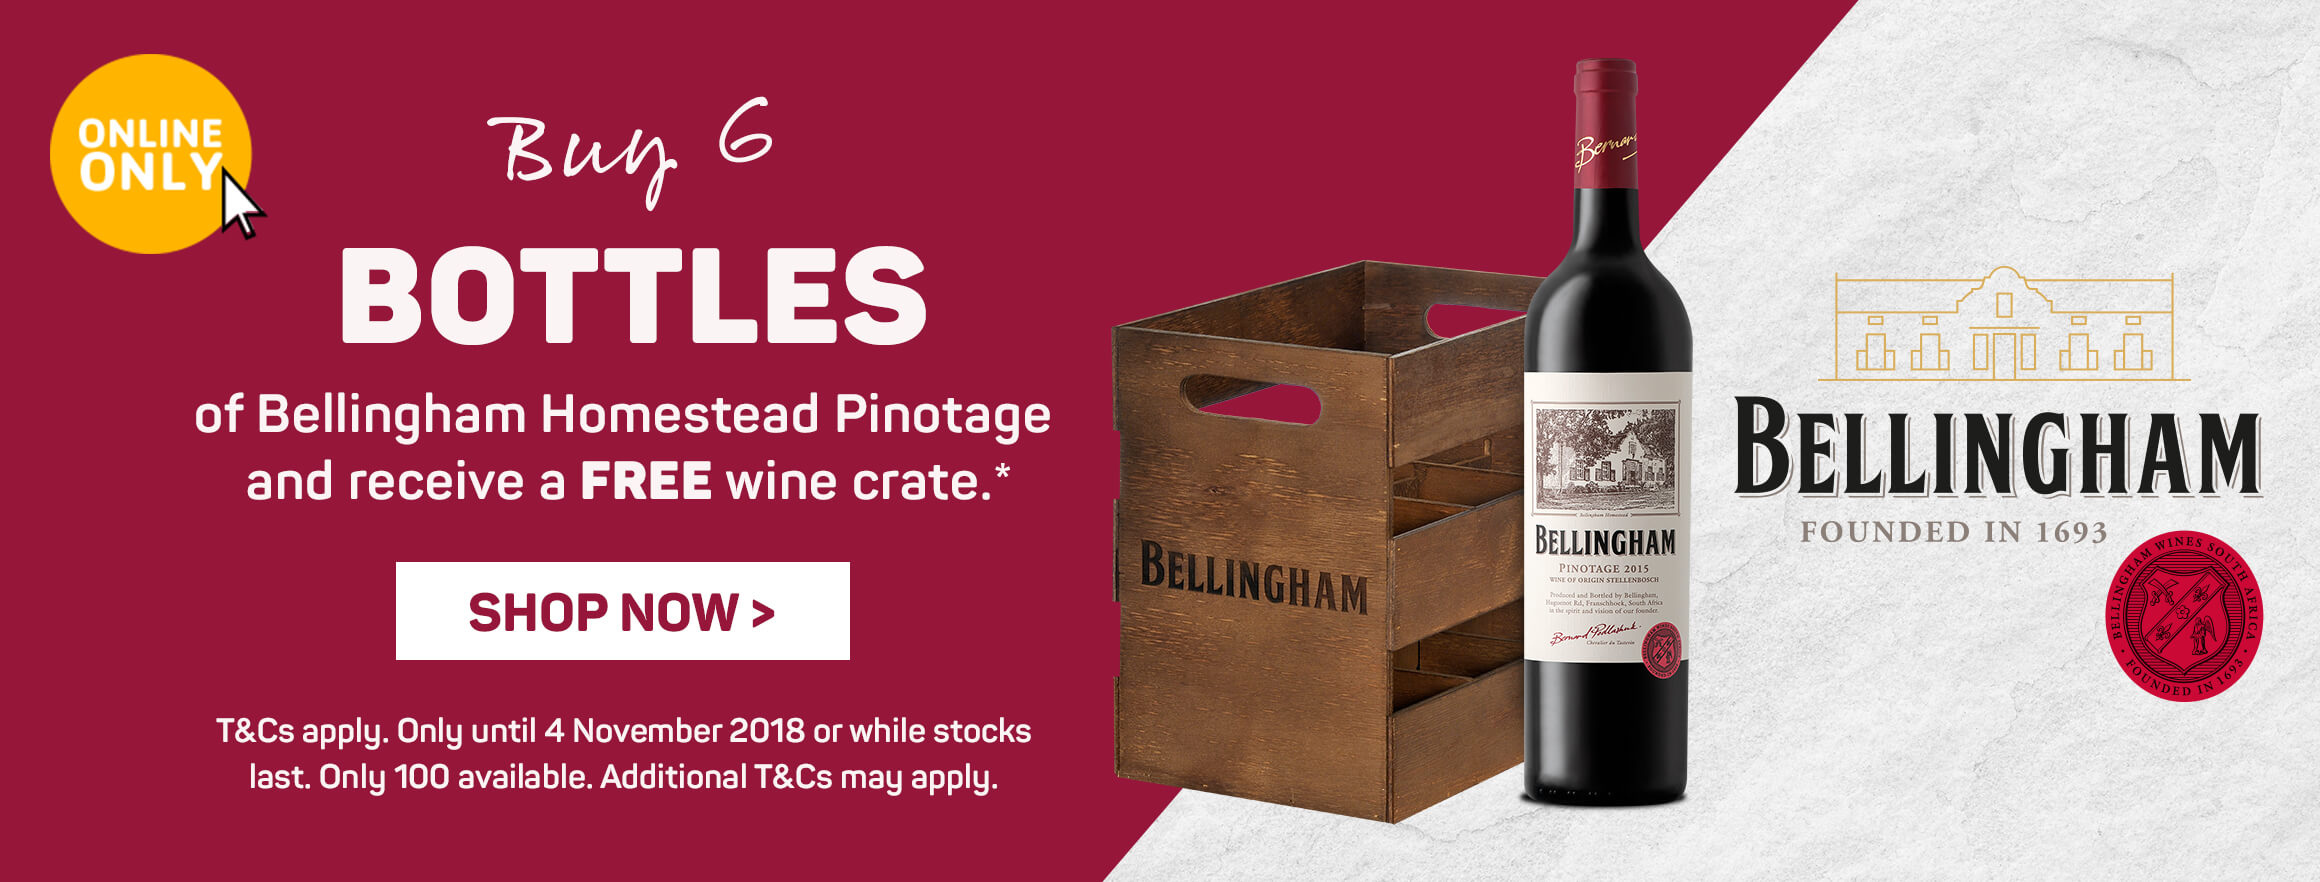 Buy 6 Bottles of Bellingham Homestead Pinotage and receive a FREE wine crate.* | SHOP NOW >